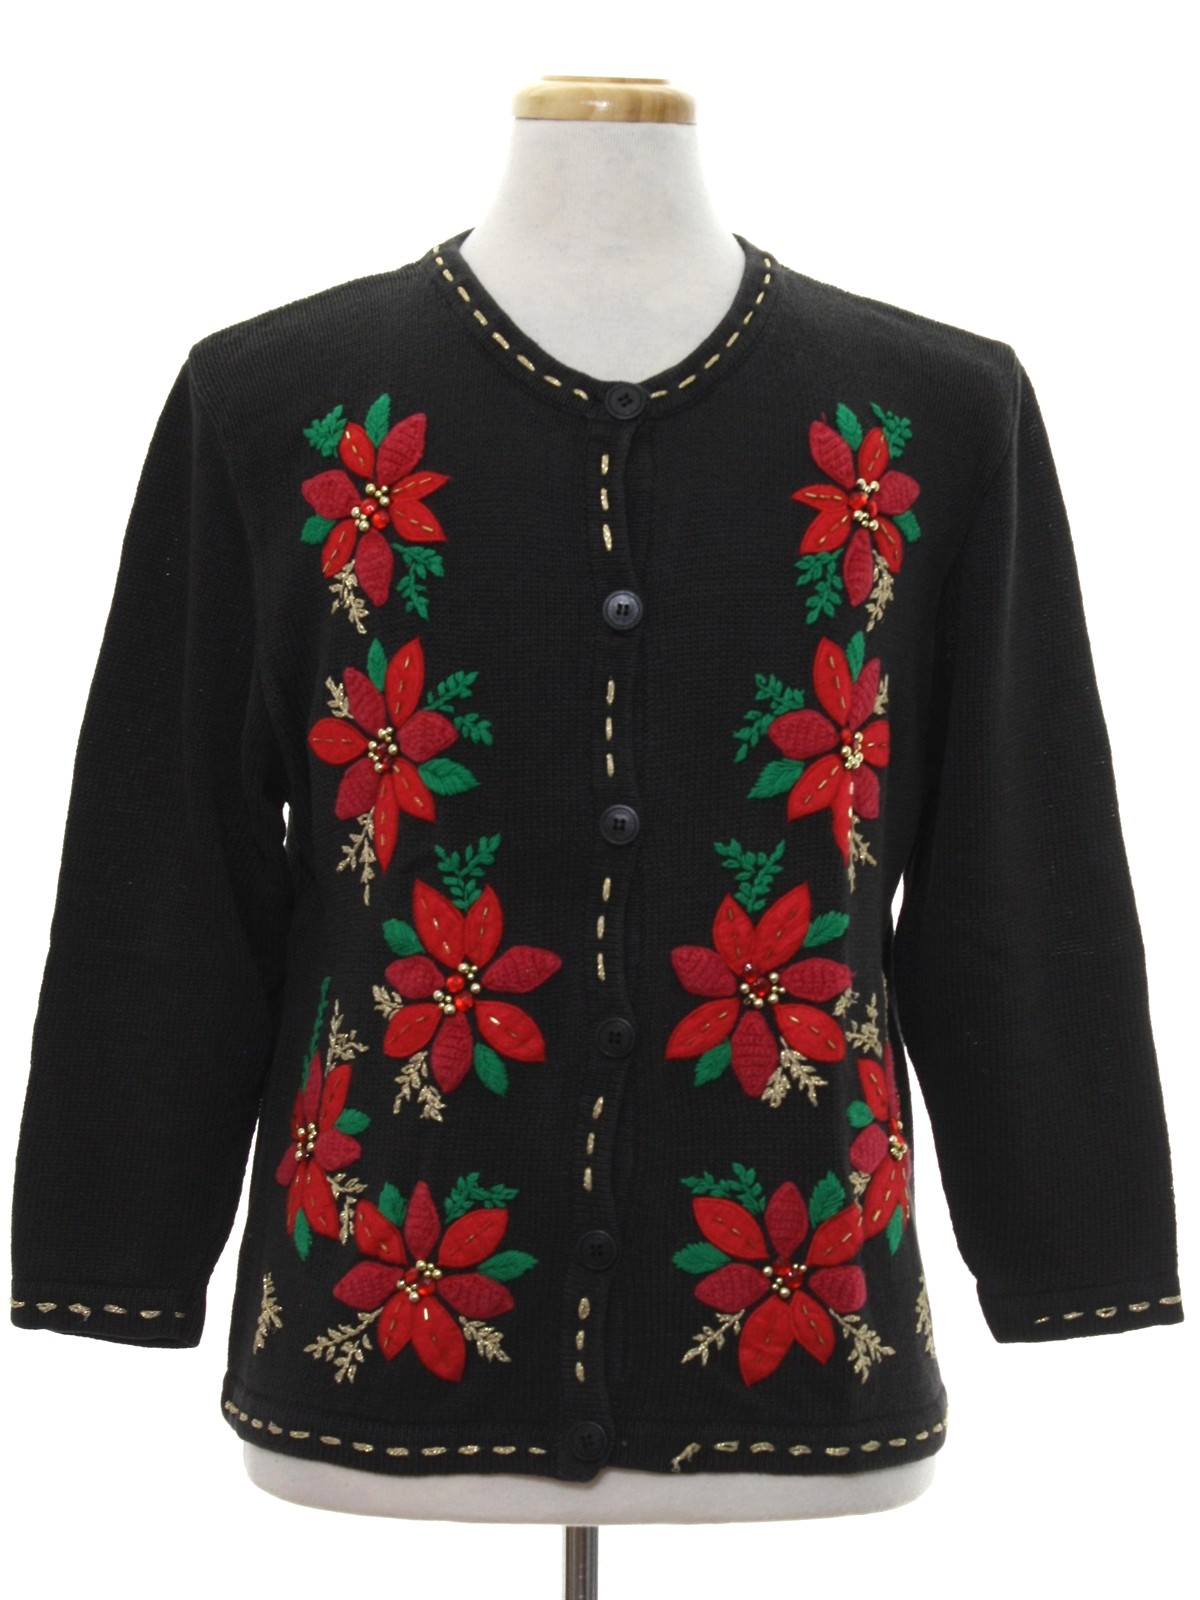 Ugly christmas sweater missing label unisex slightly for Over the top ugly christmas sweaters